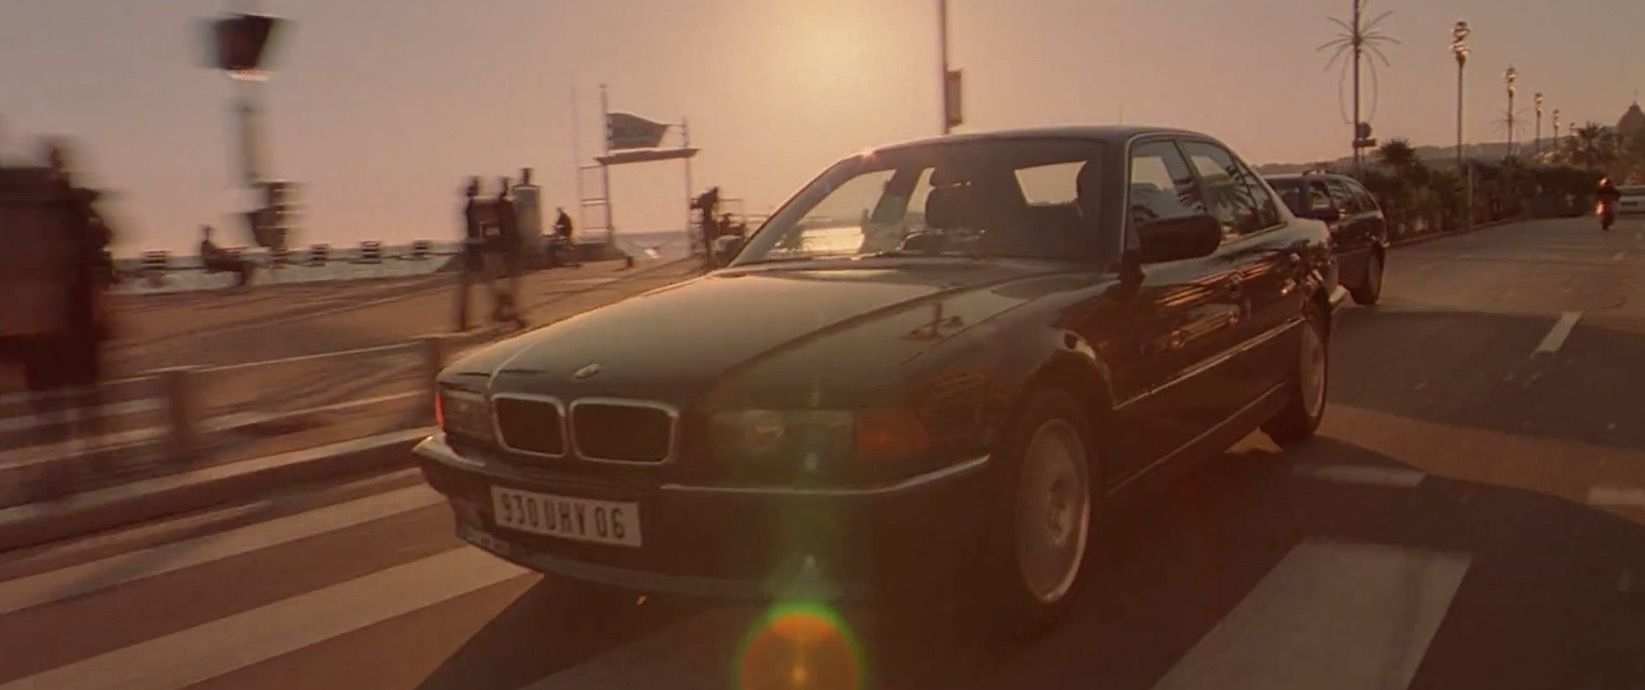 BMW 735i [E38] (1995) car driven by Jason Statham in THE ...